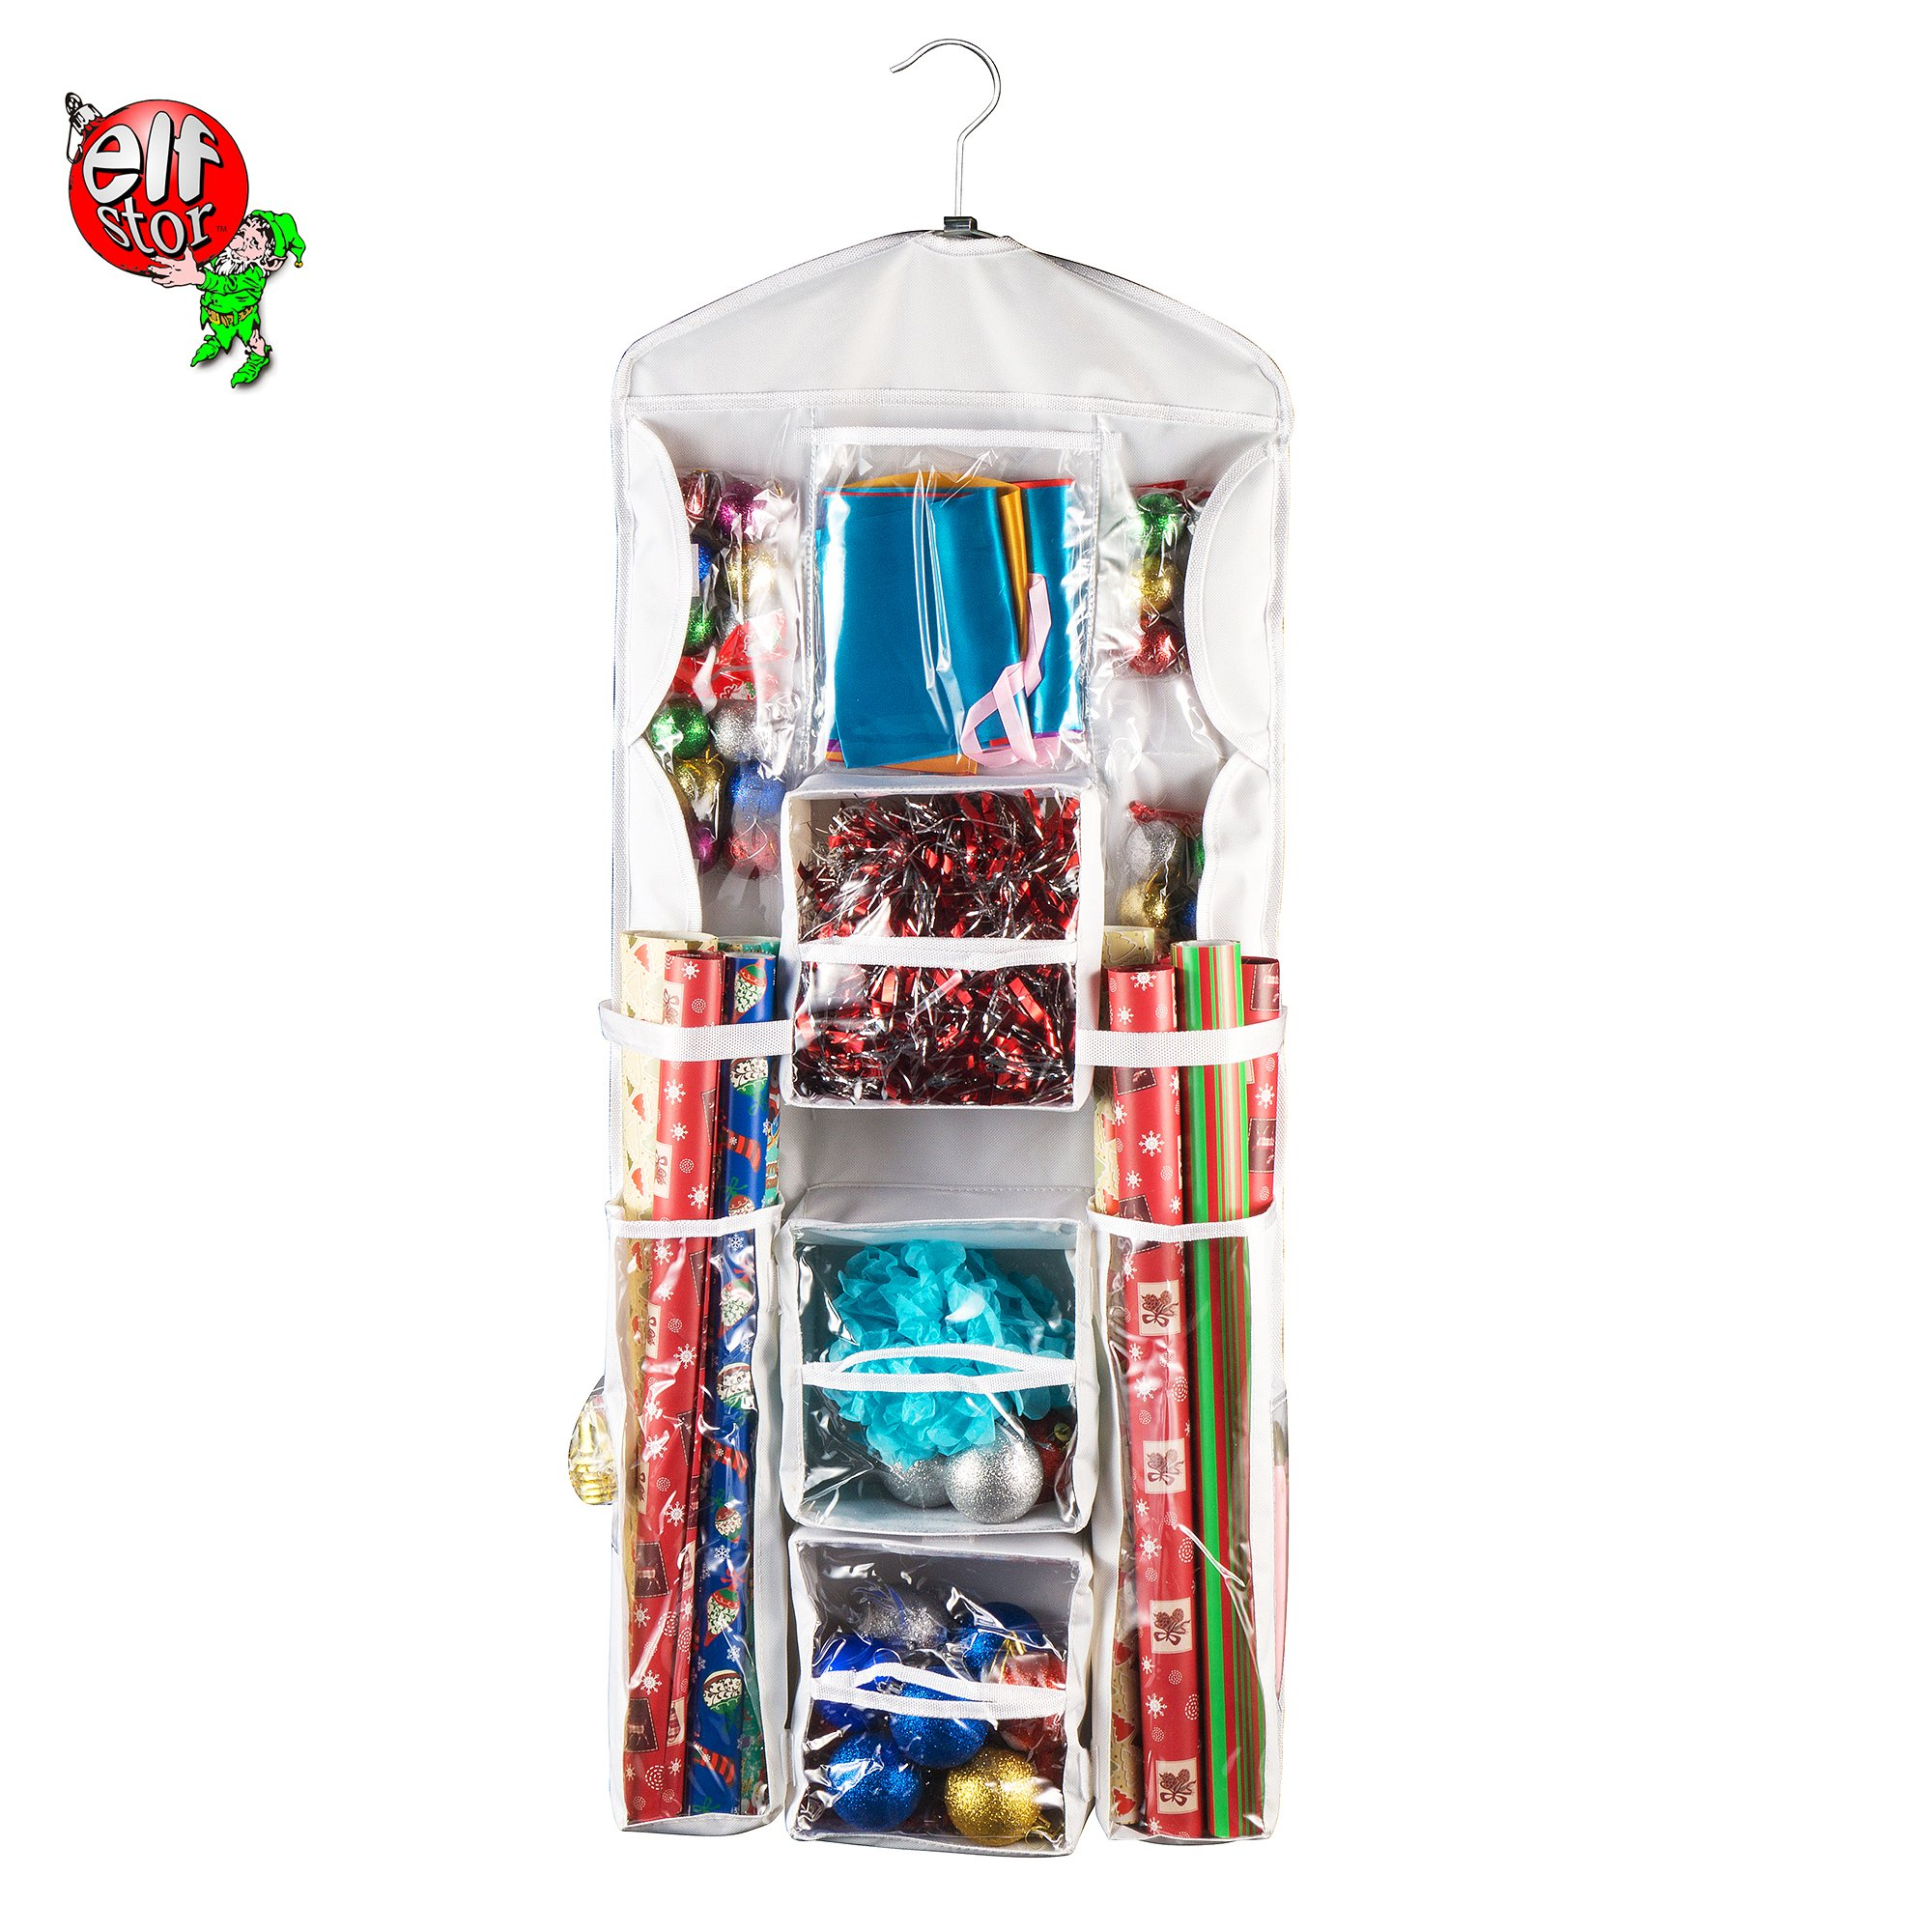 Elf Stor 83-DT5151 Double Sided   Hanging Gift Wrap and Bag Organizer   Space Saving  